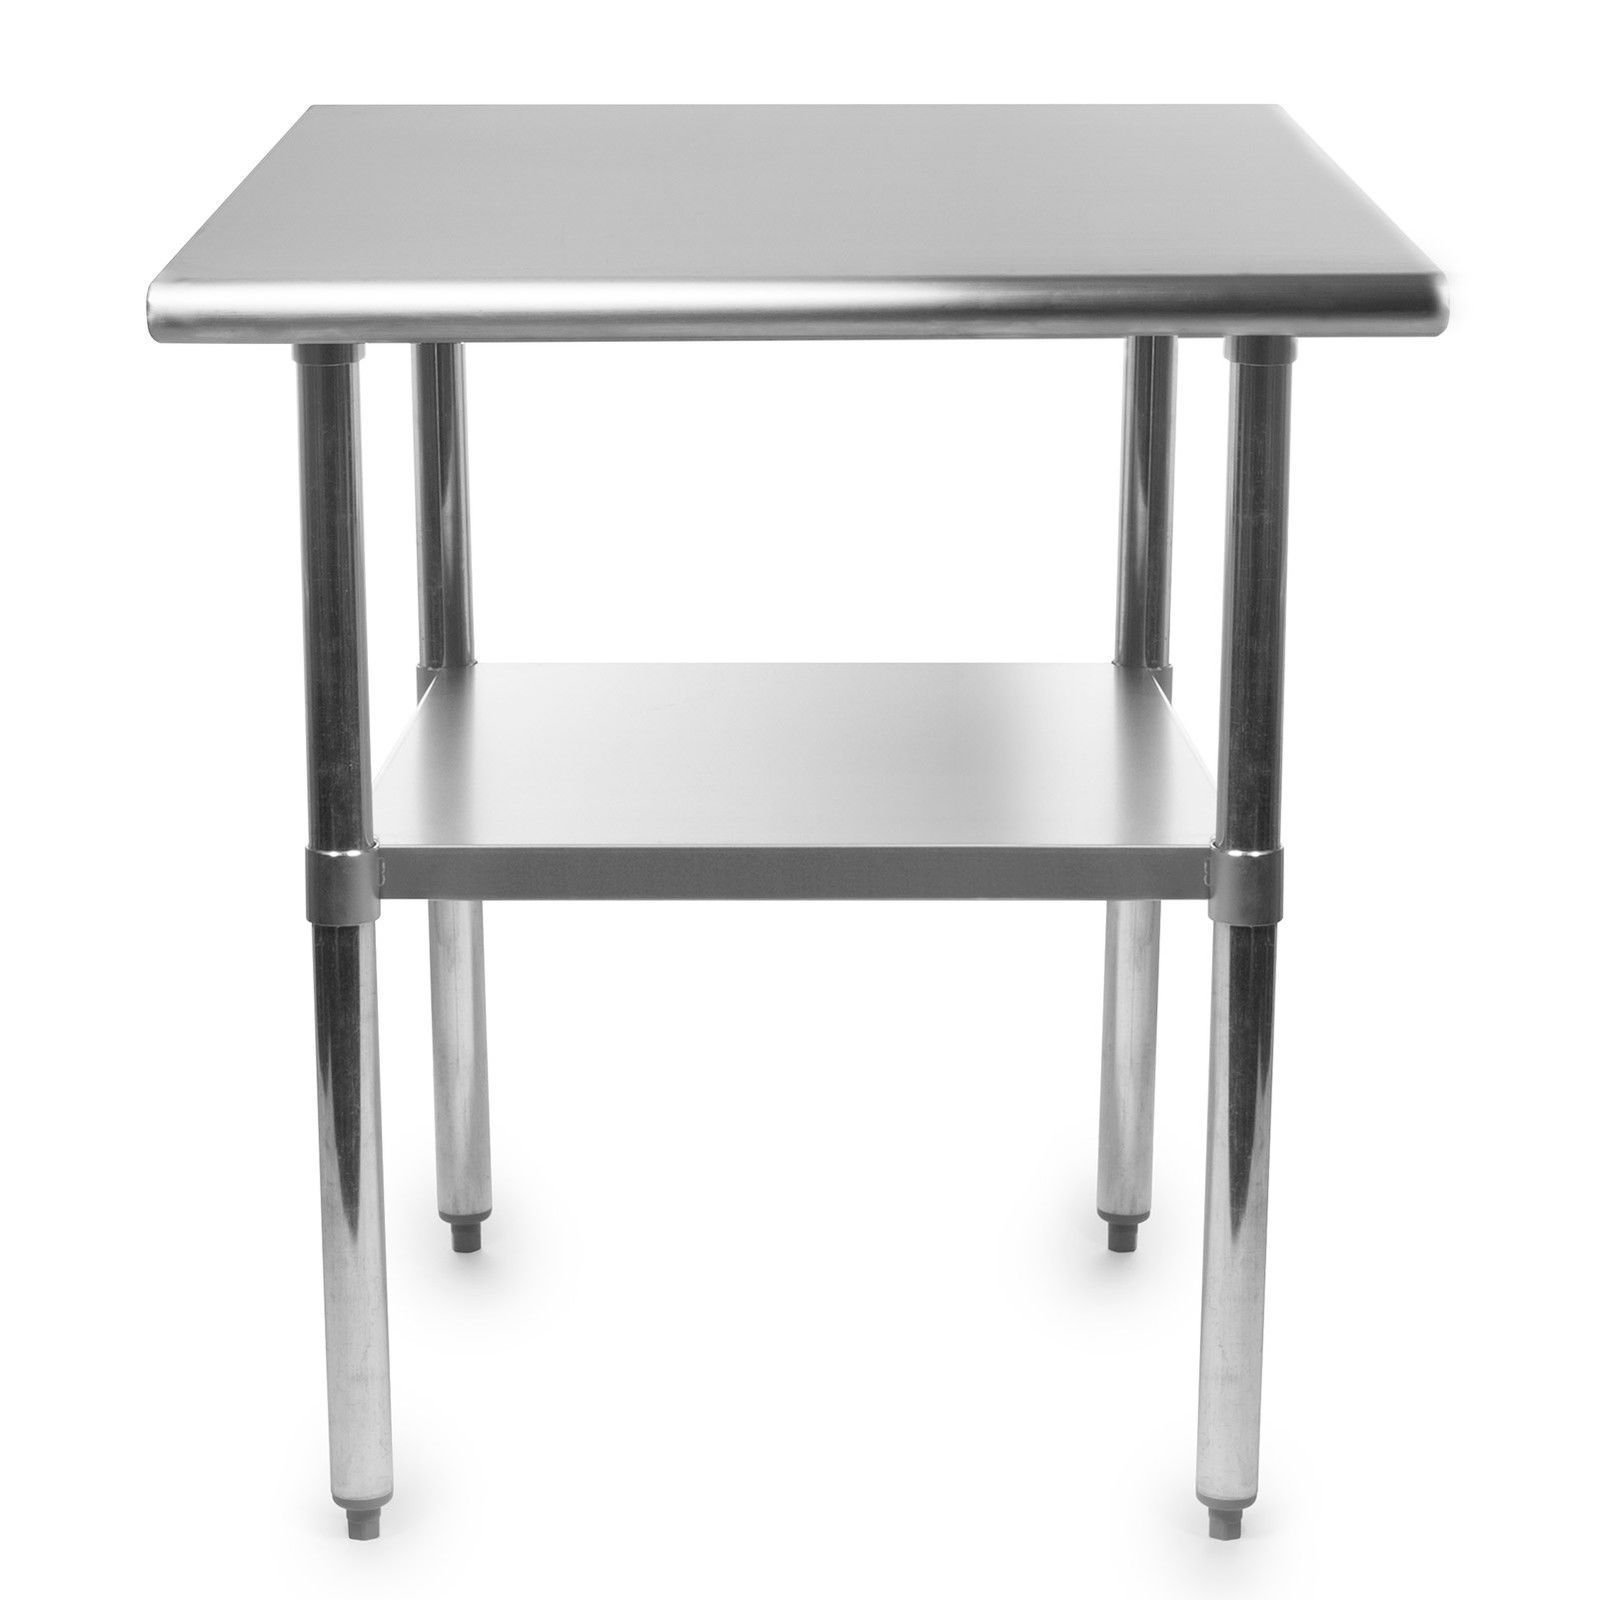 Universal SG1848 - 48'' X 18'' Stainless Steel Work Table W/ Galvanized Under Shelf